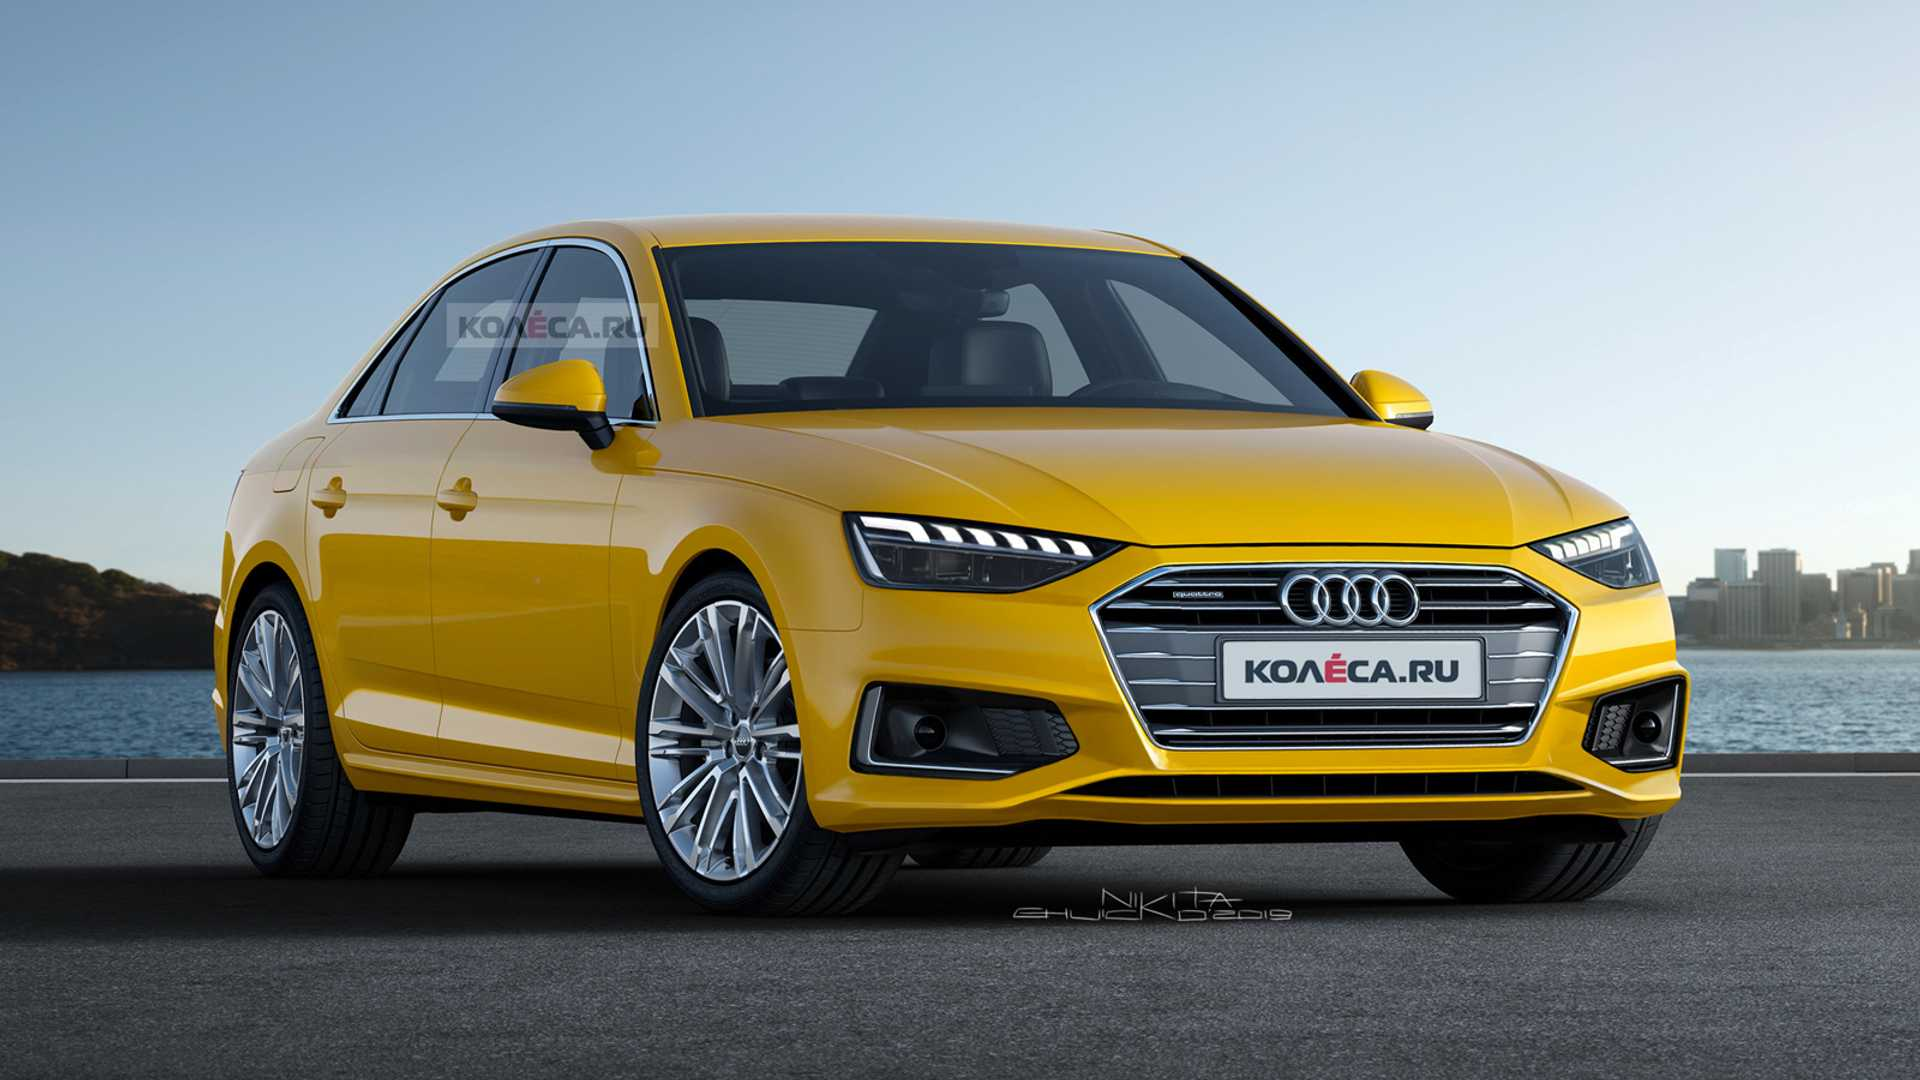 65 All New Audi A4 B10 2020 Specs and Review for Audi A4 B10 2020